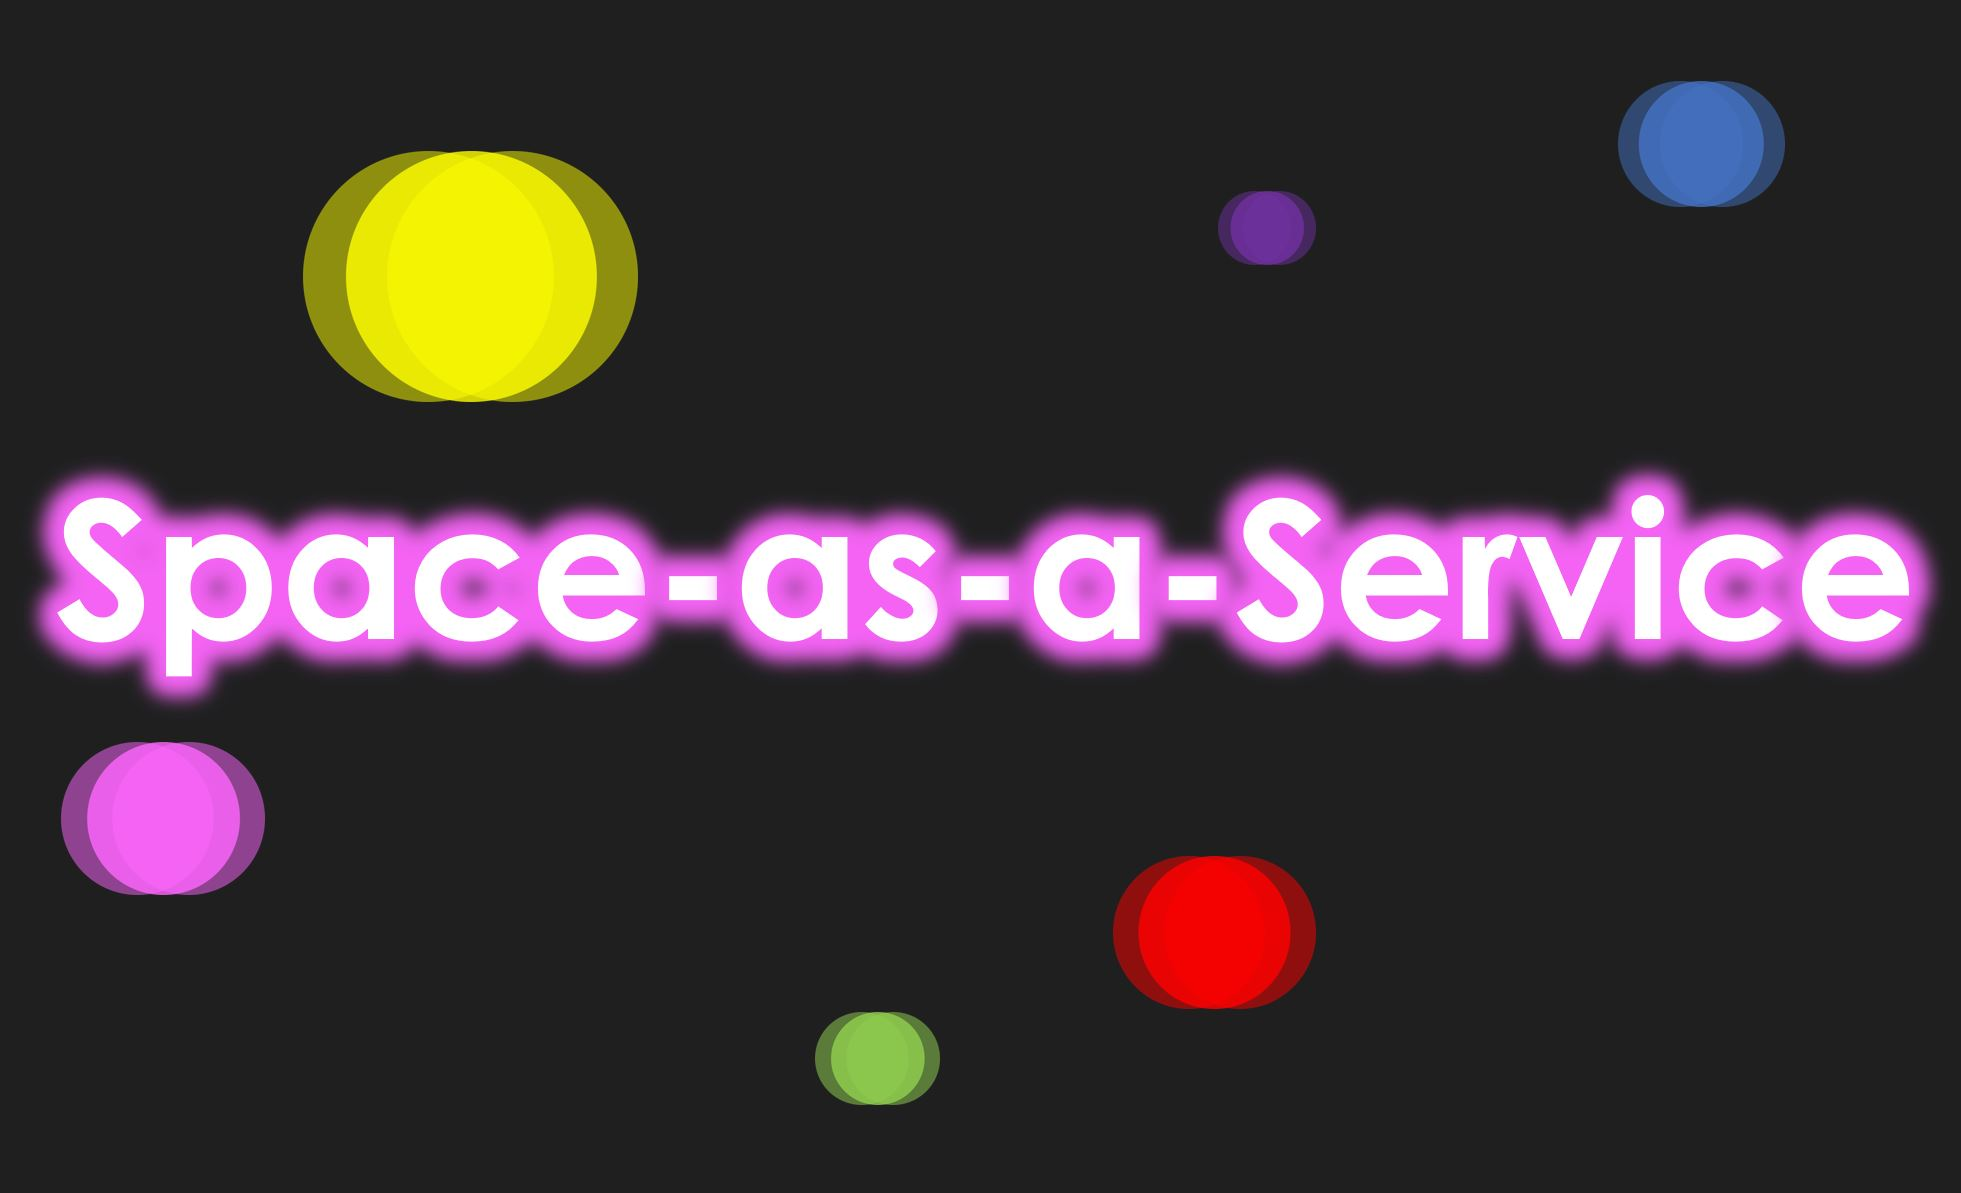 Space-as-a-Service | LUFT | Branded Real Estate Forum